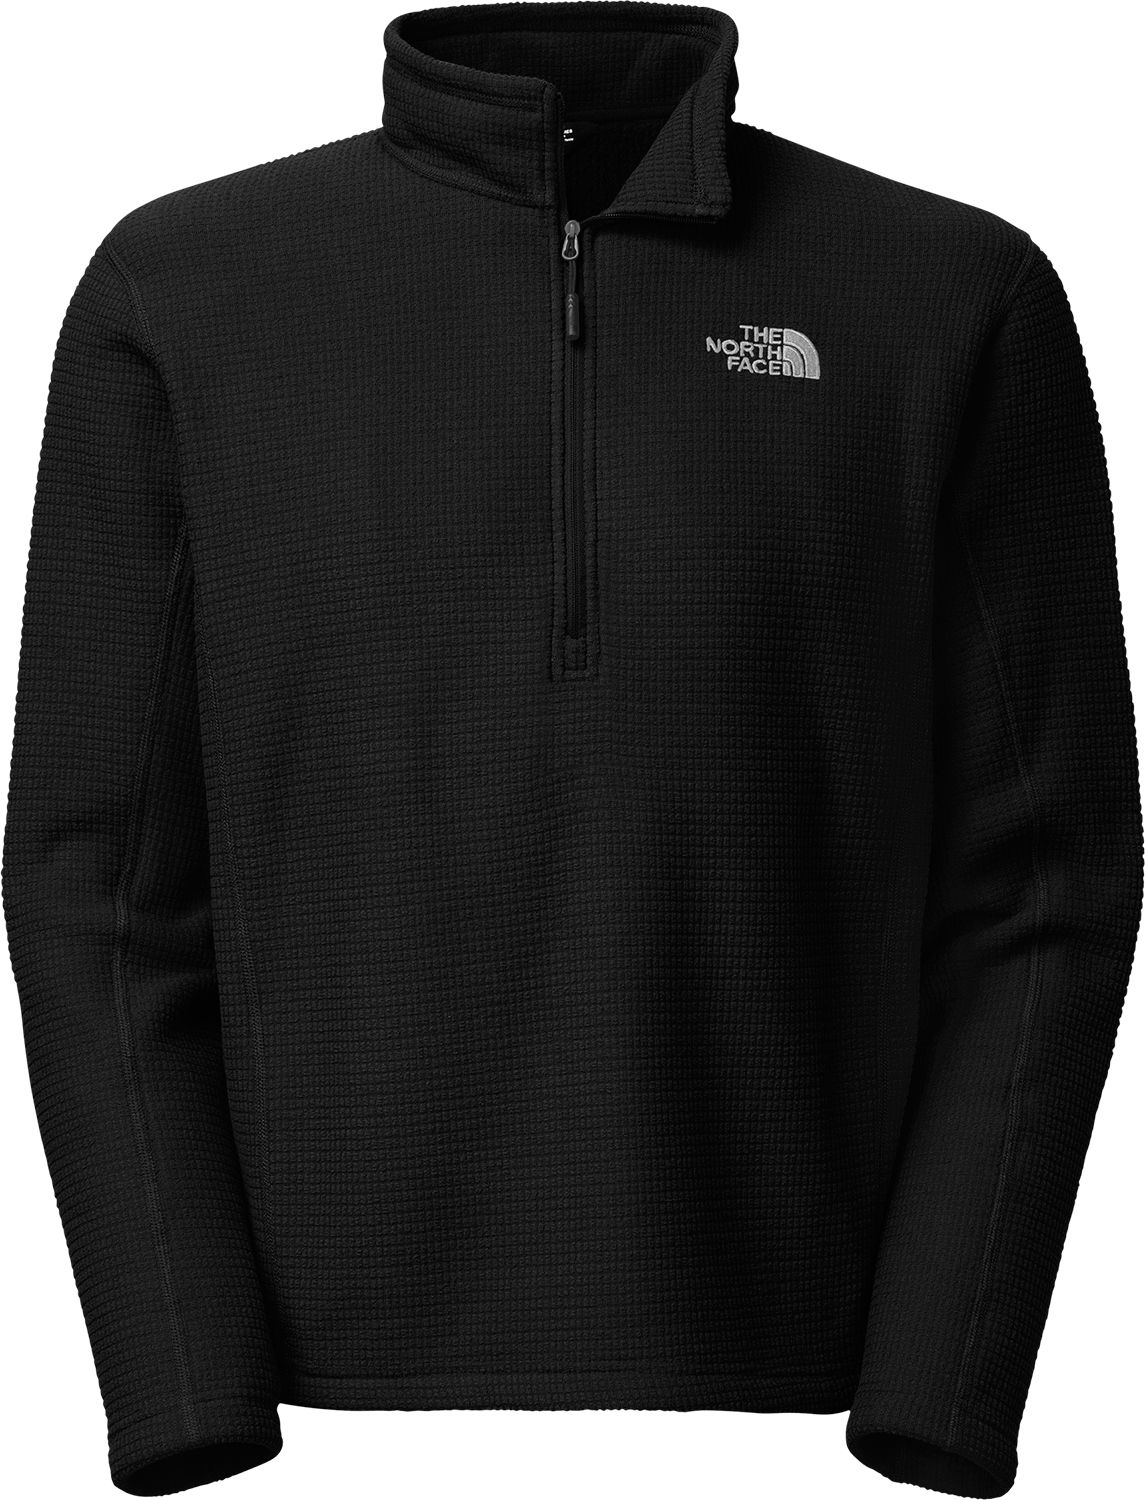 The North Face Men's SDS Half Zip Fleece Pullover | DICK'S ...